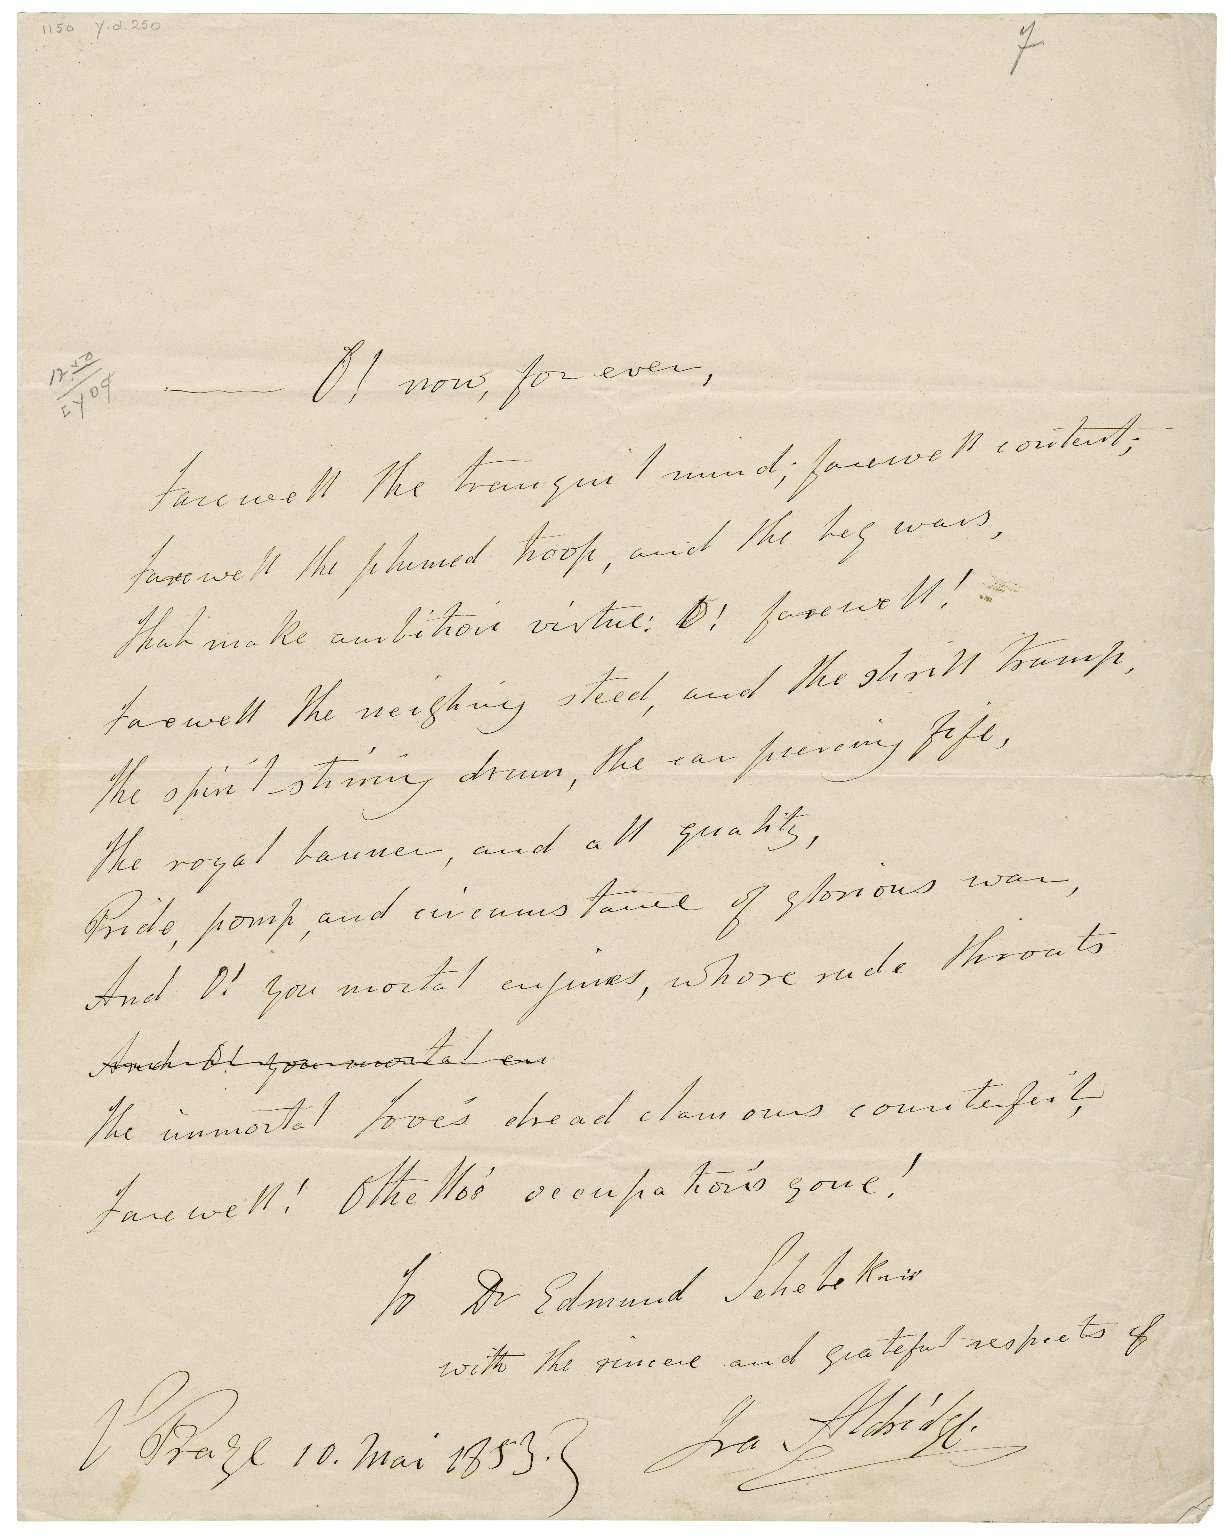 <b>Aldridge note, 1853</b>     	</br>An extract of Othello&#39;s dialogue in Act 3, Scene 3, lines 350-357 written out by Aldridge and addressed to Dr. Edmund Sehebekris probably after a performance on May 10, 1853 